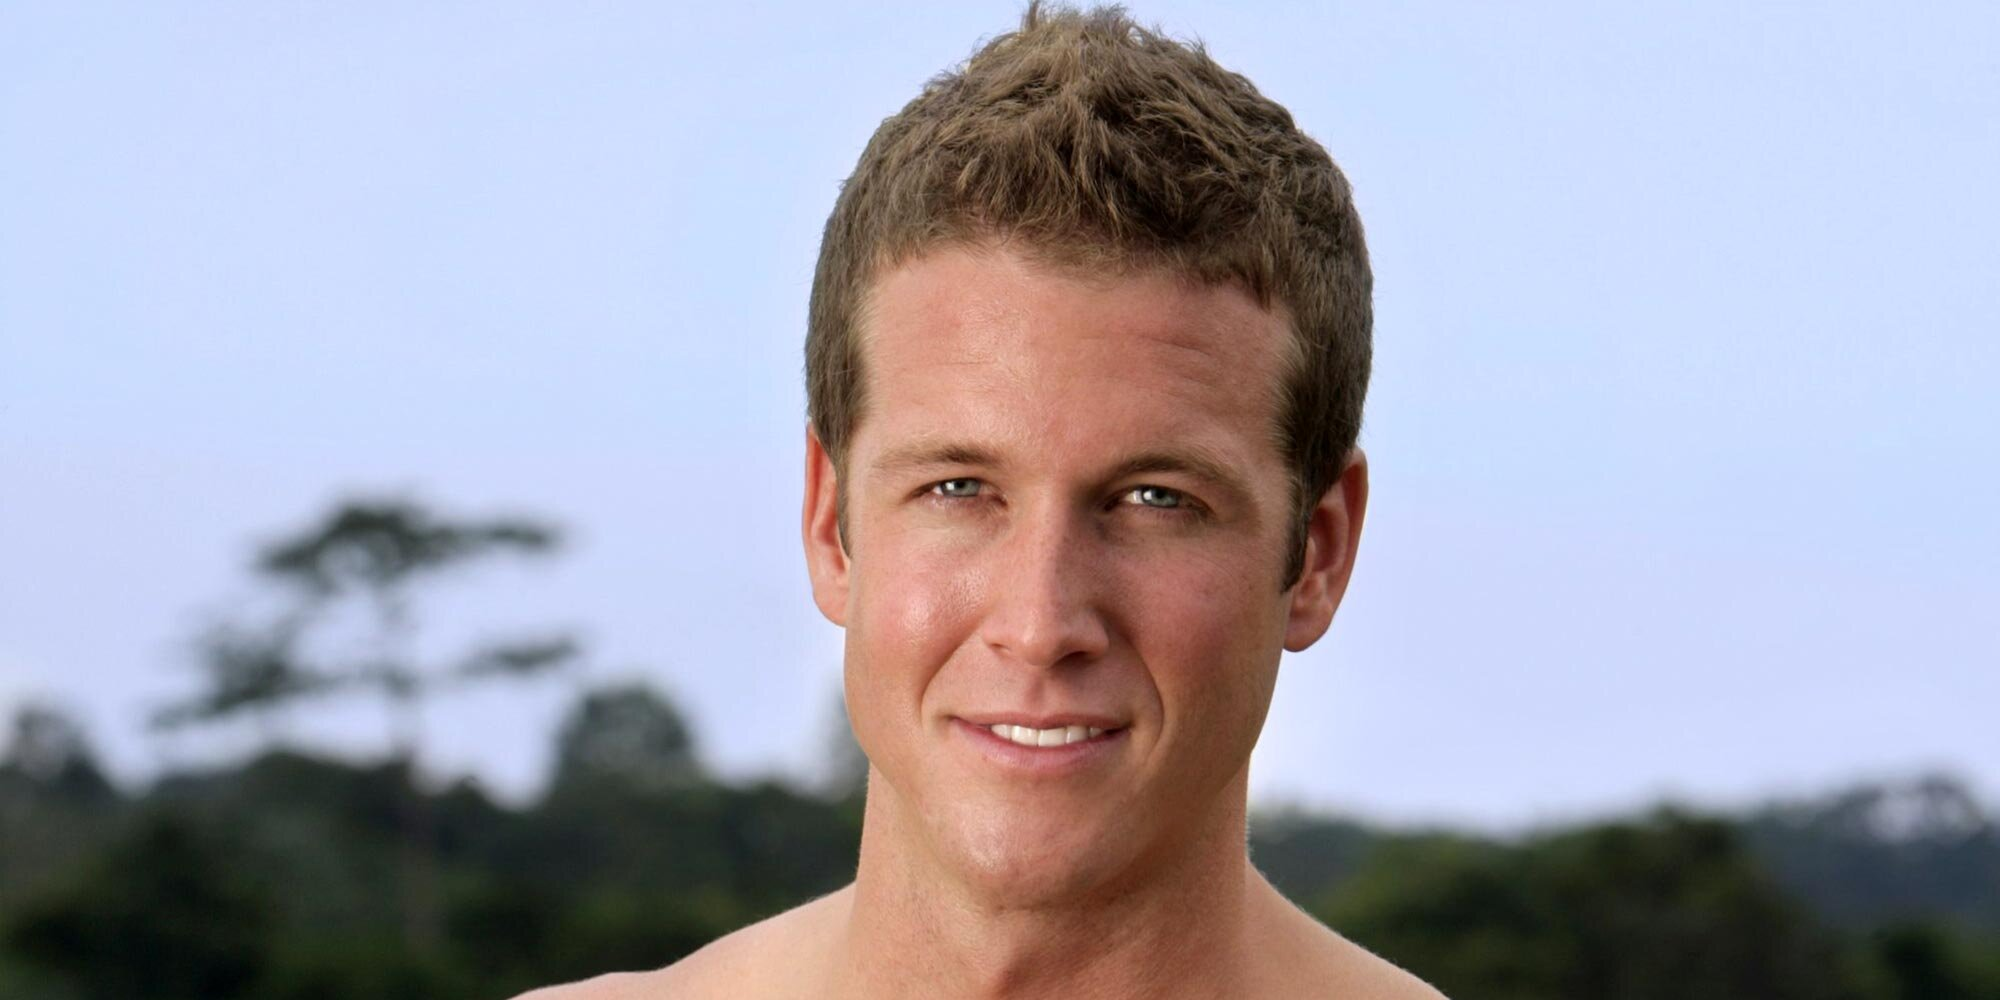 Marcus Lehman regrets 'playing by the rules' on 'Survivor'